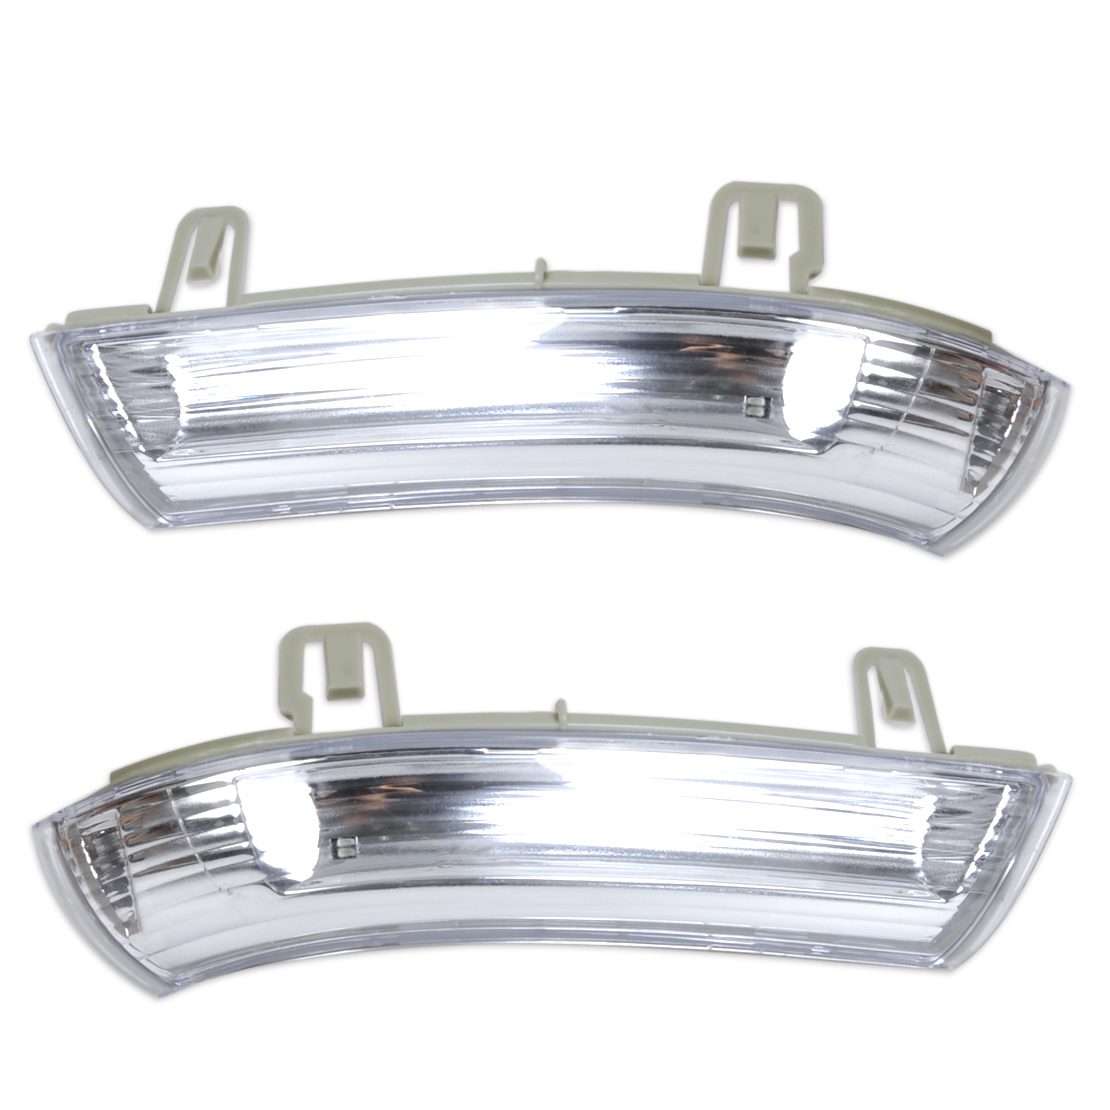 beler Left + Right Mirror Indicator Turn Signal Light Lamp for VW GOLF GTI JETTA MK5 PASSAT RABBIT EOS 1K0 949 101 1K0 949 102 abs mirror cover chrome matt painted cap side mirror housings for volkswagen jetta golf 5 passat b6 ct